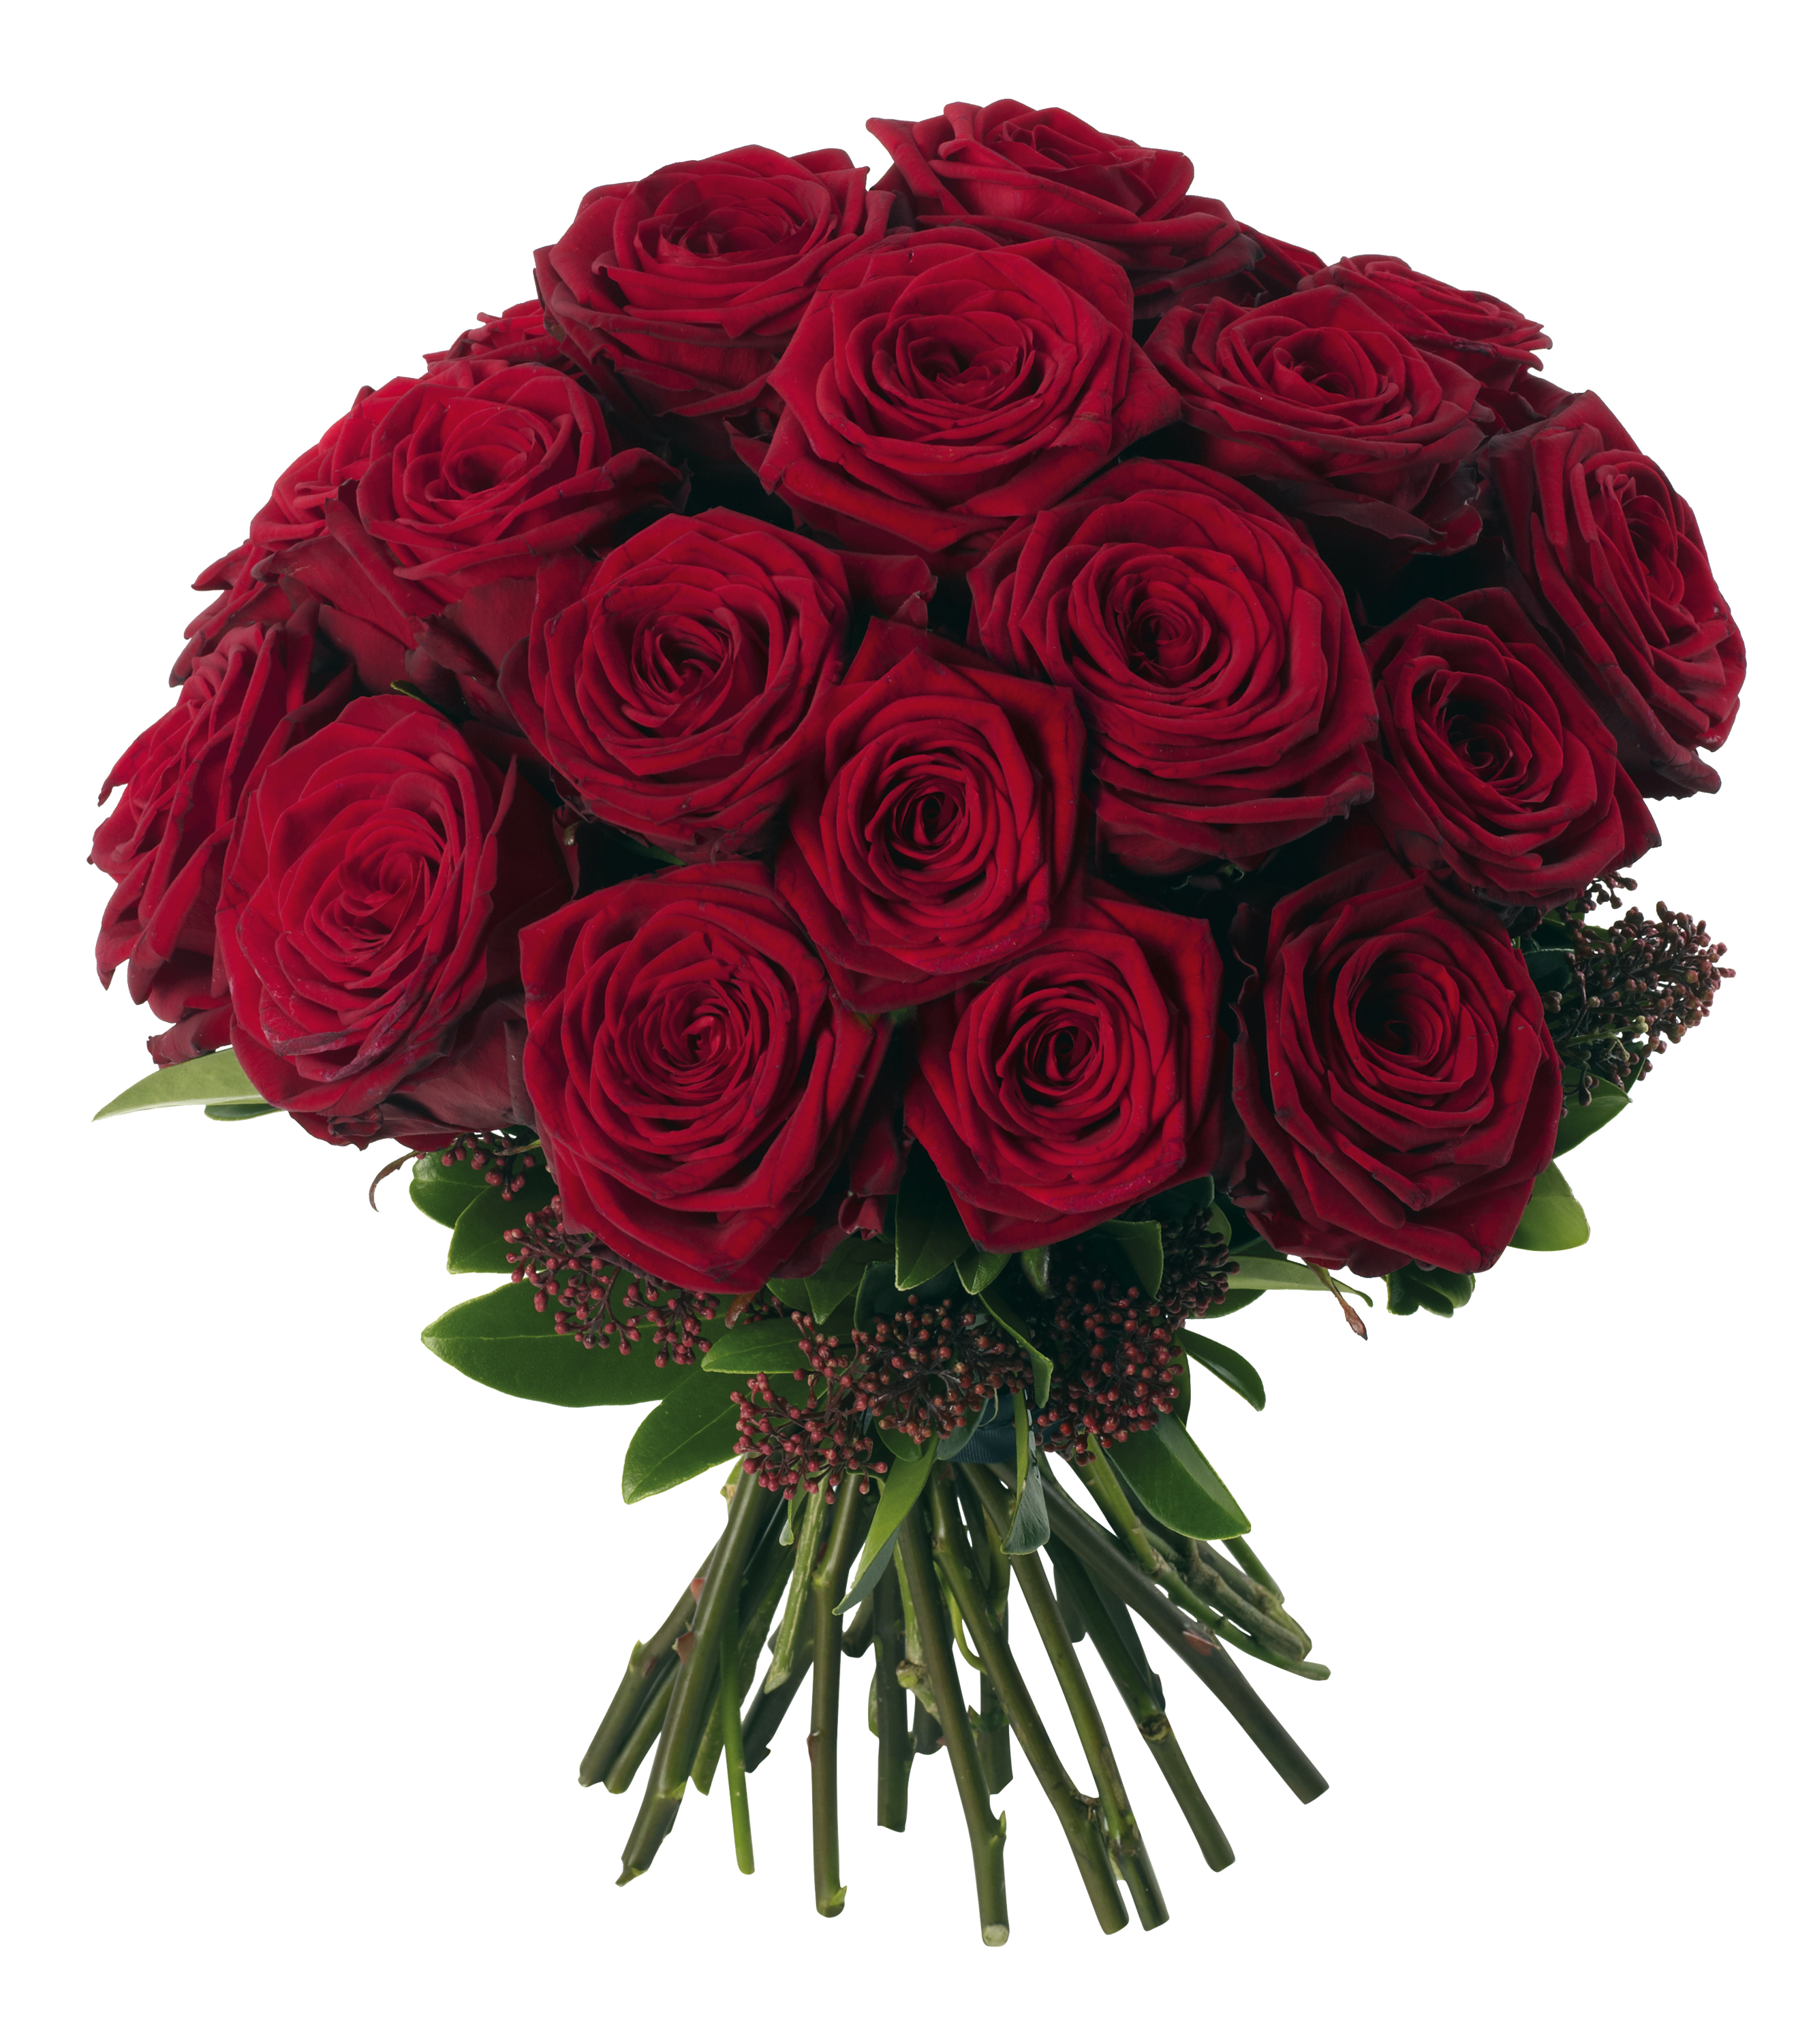 nice bouquet flowers red rose clipart background #34098